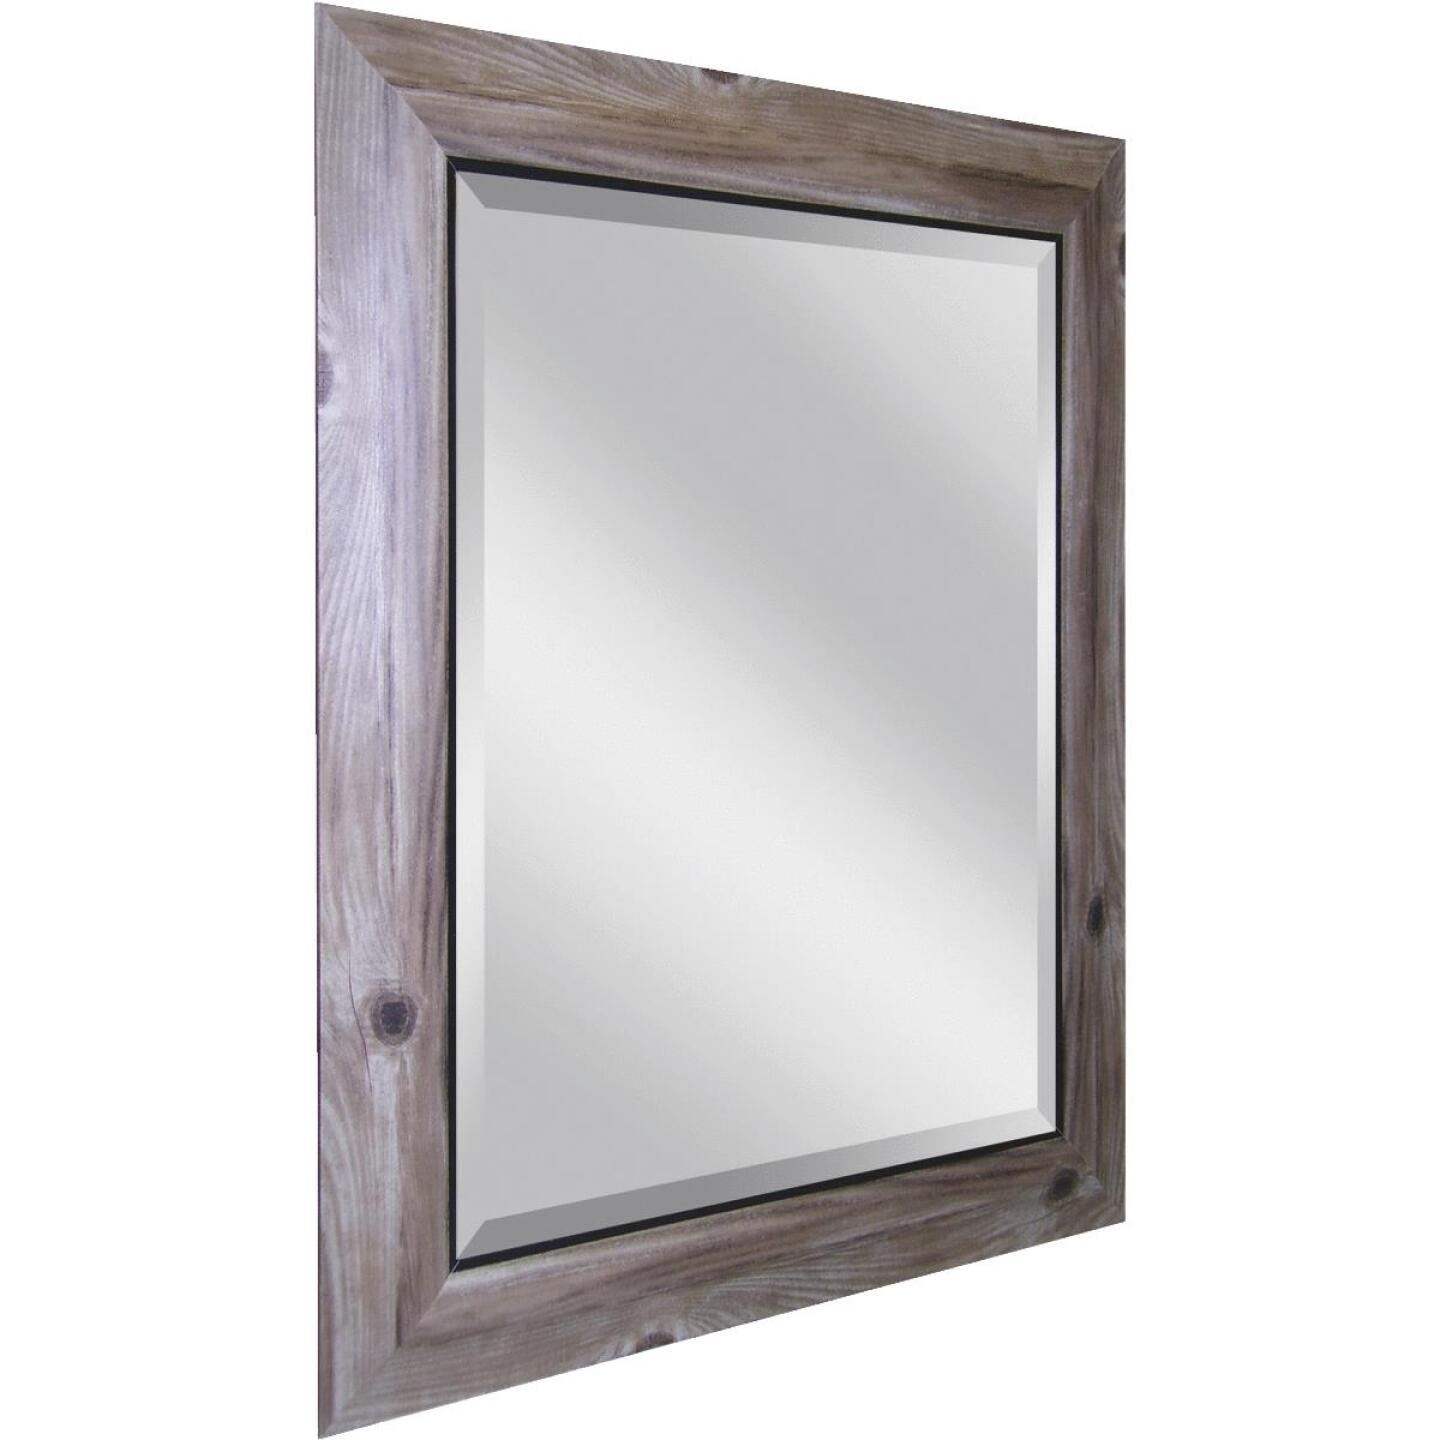 Erias Home Designs 21.5 In. W. x 25.5 In. H. Distressed Bark-Look Framed Wall Mirror Image 1